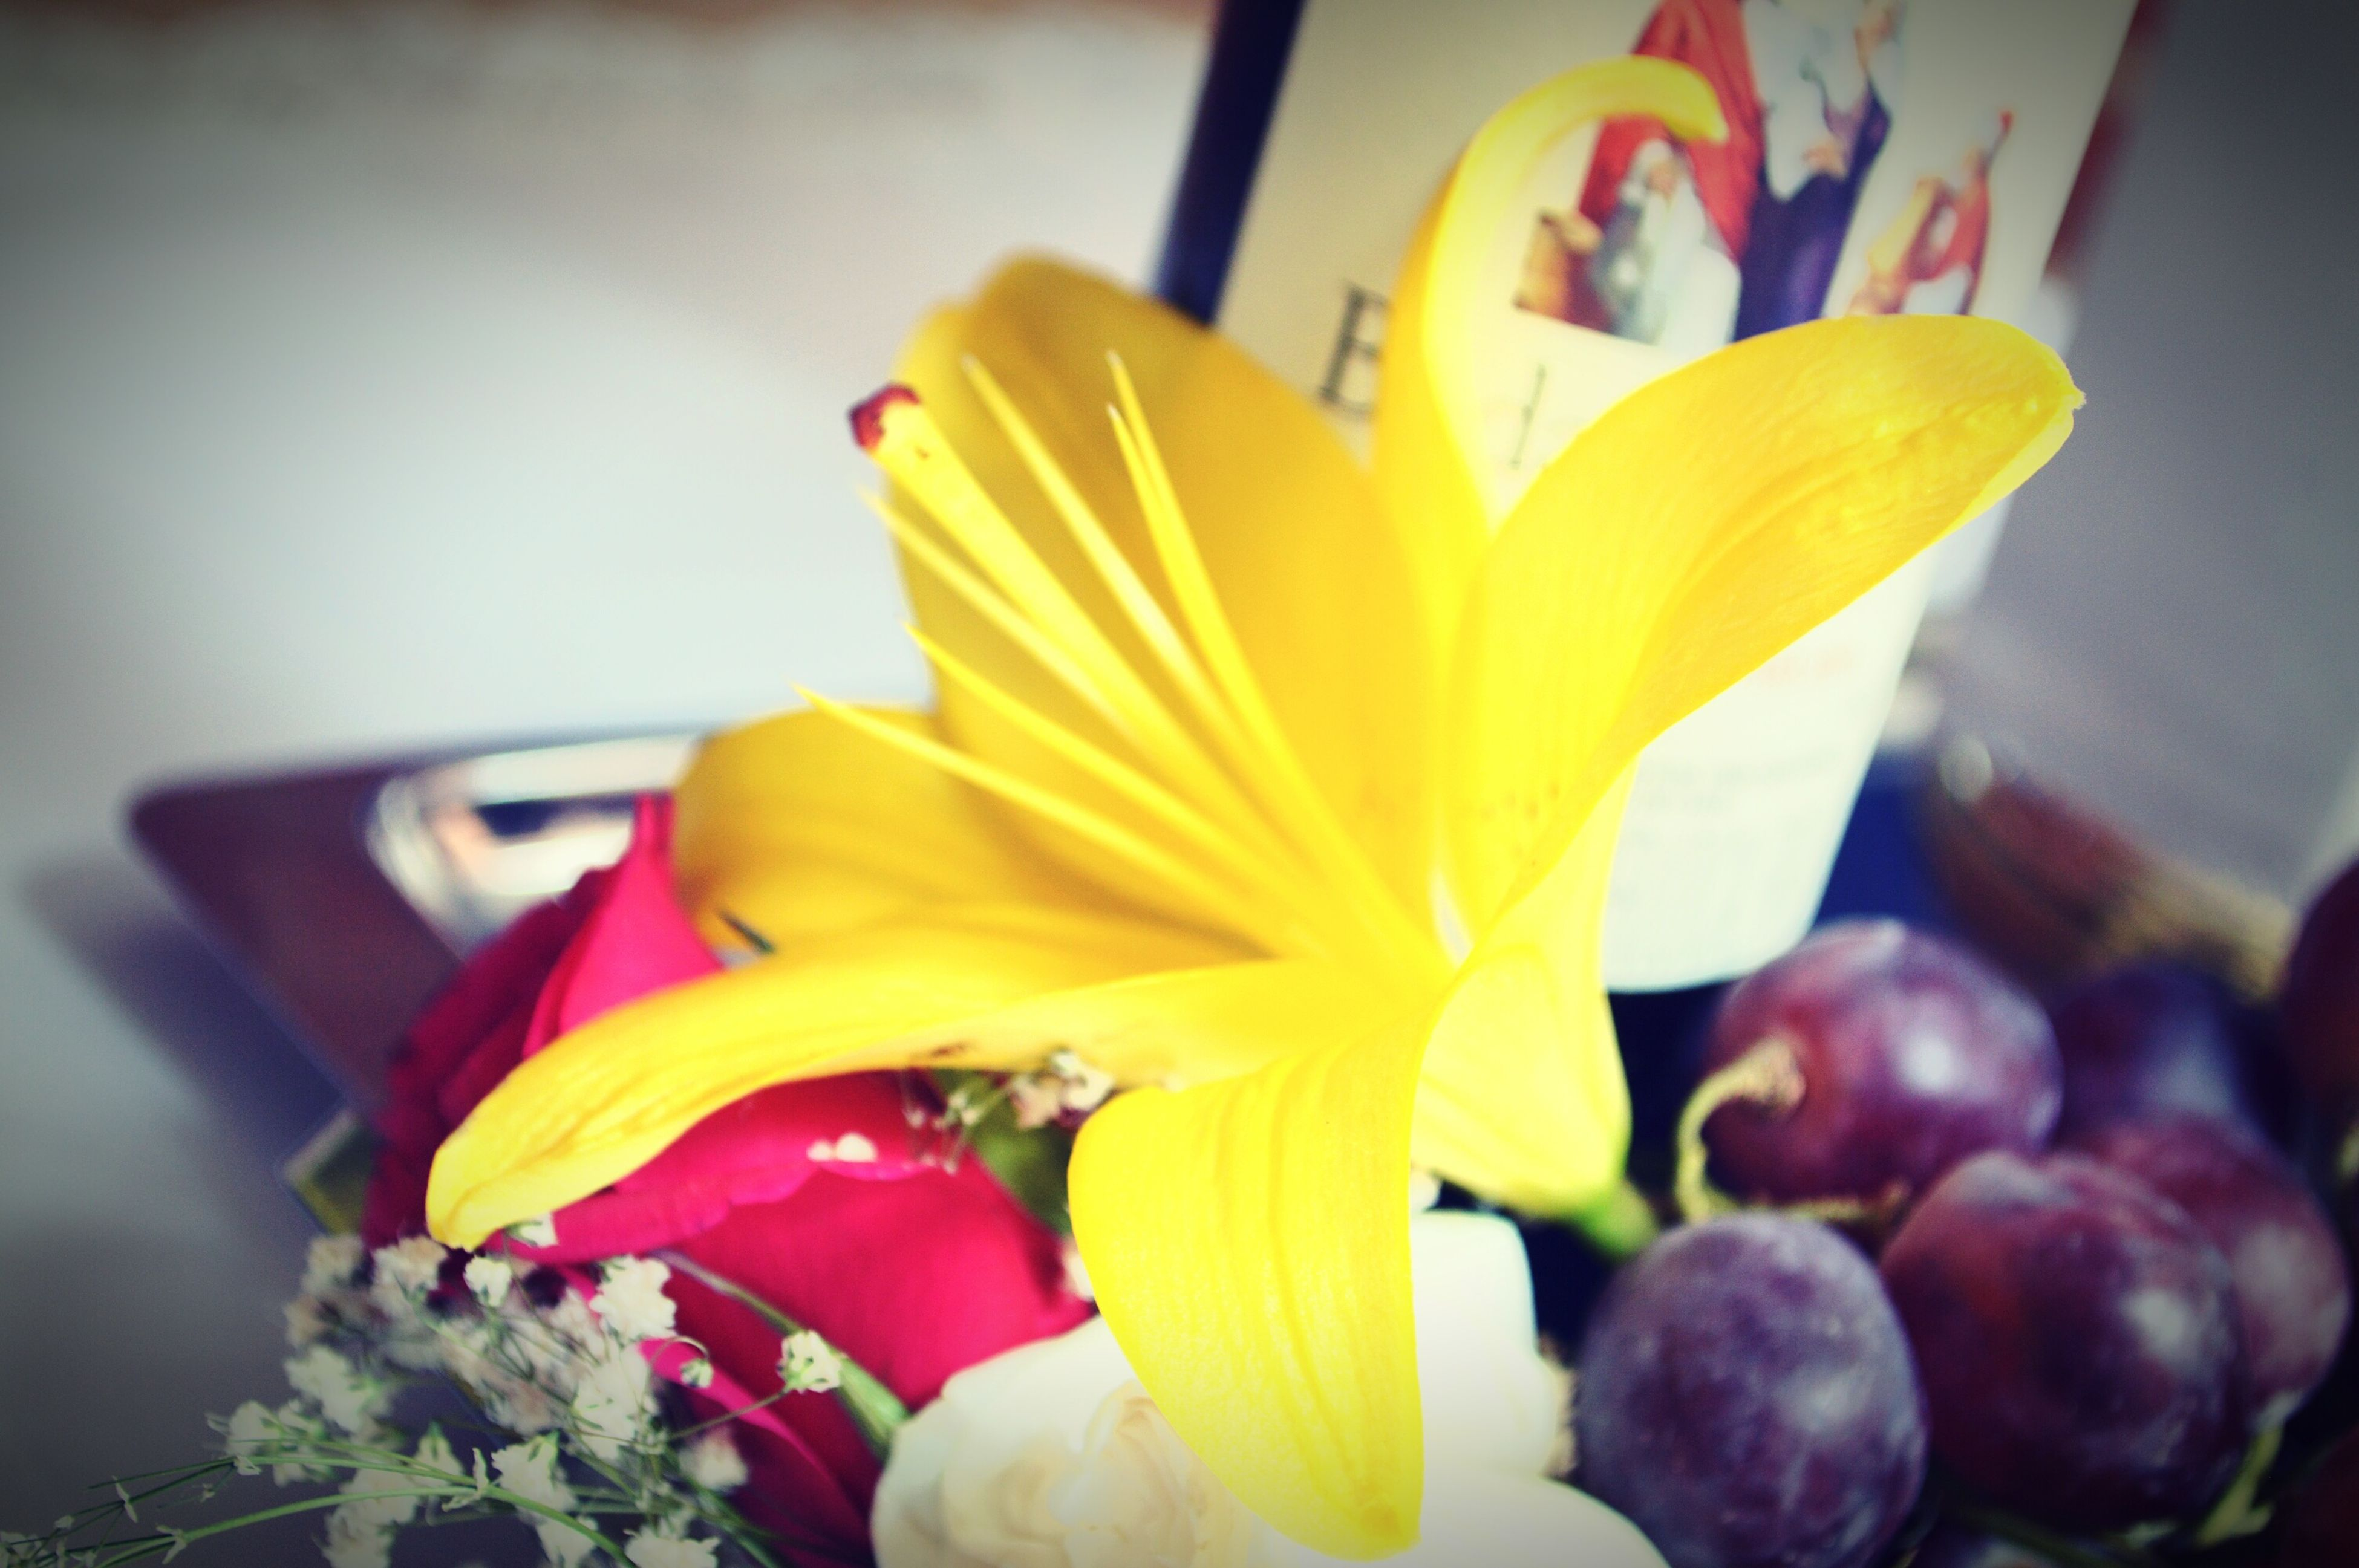 flower, petal, flower head, freshness, fragility, yellow, close-up, indoors, beauty in nature, blooming, growth, plant, pollen, nature, single flower, focus on foreground, in bloom, vase, auto post production filter, home interior